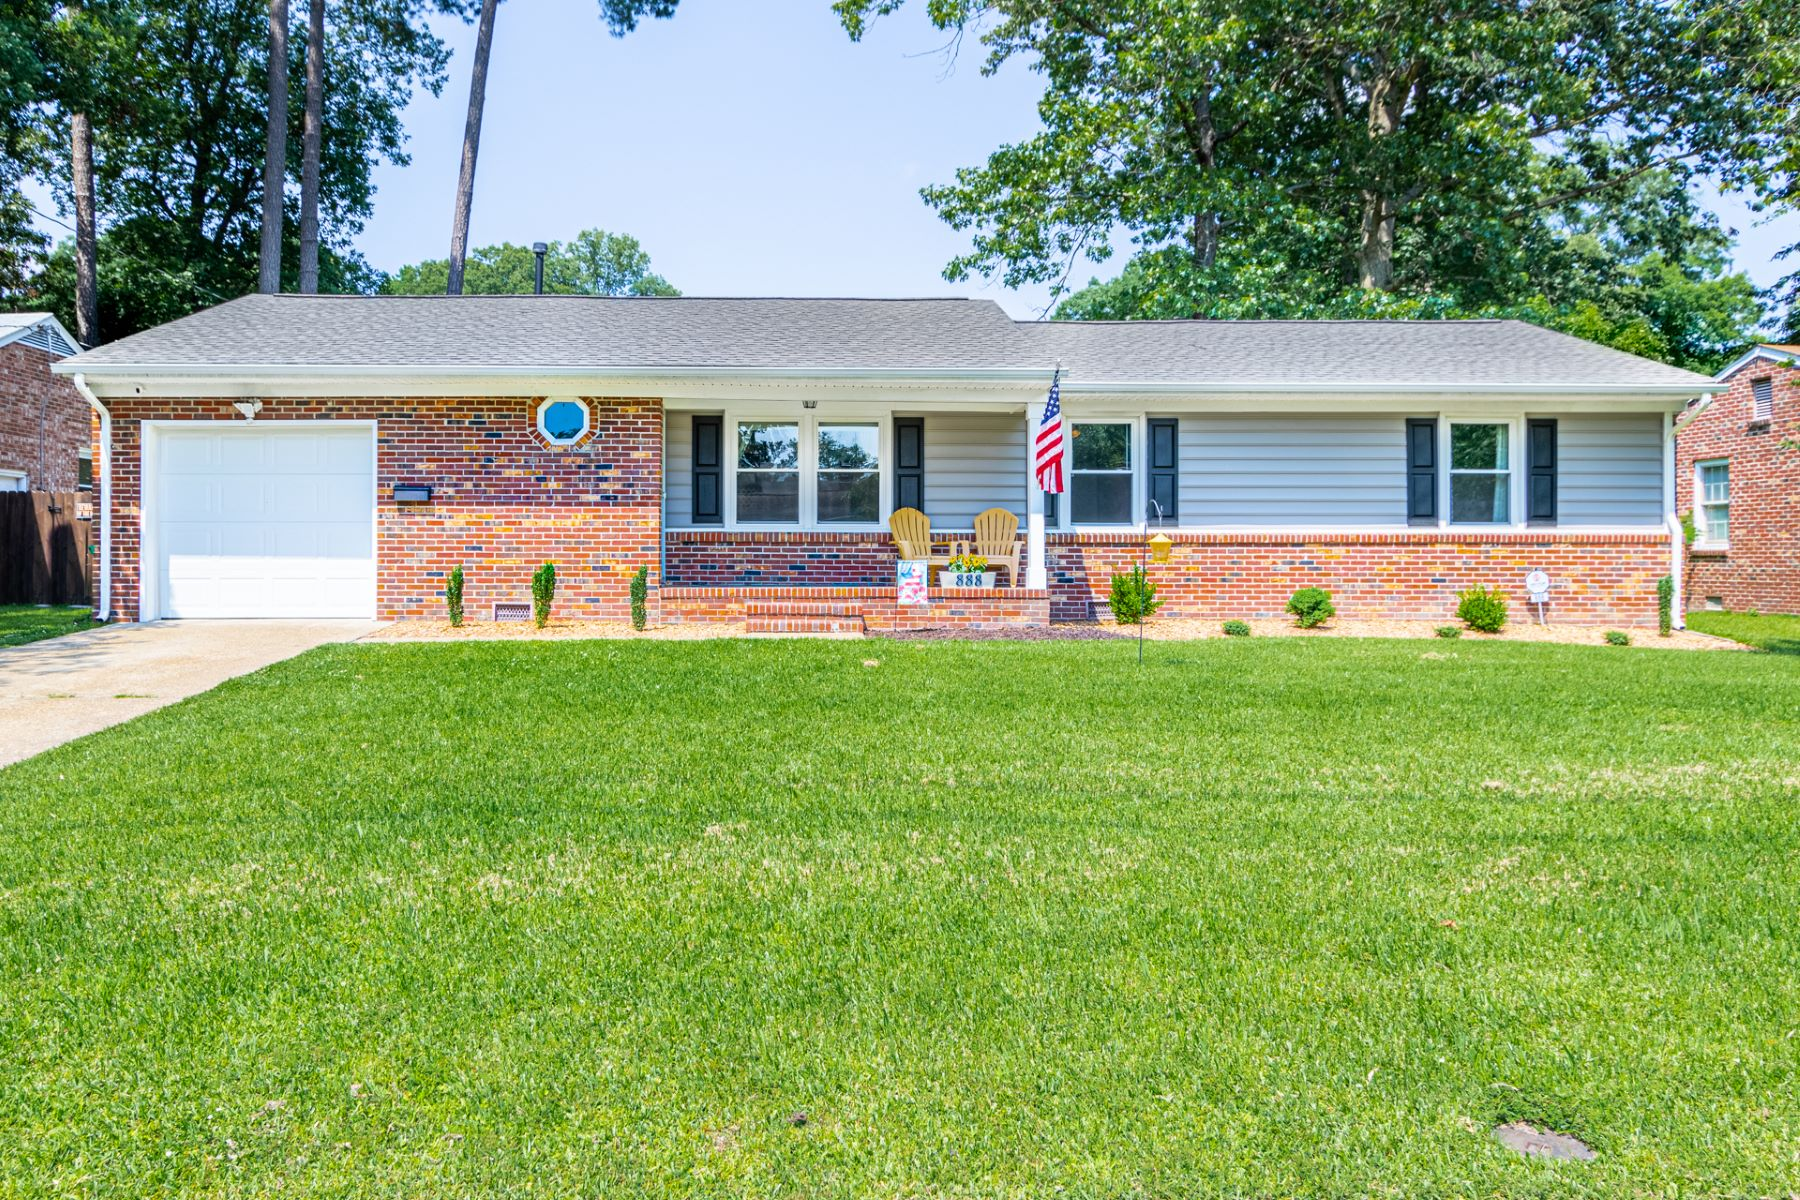 Single Family Homes for Sale at BEECHWOOD 888 Elder Road Newport News, Virginia 23608 United States